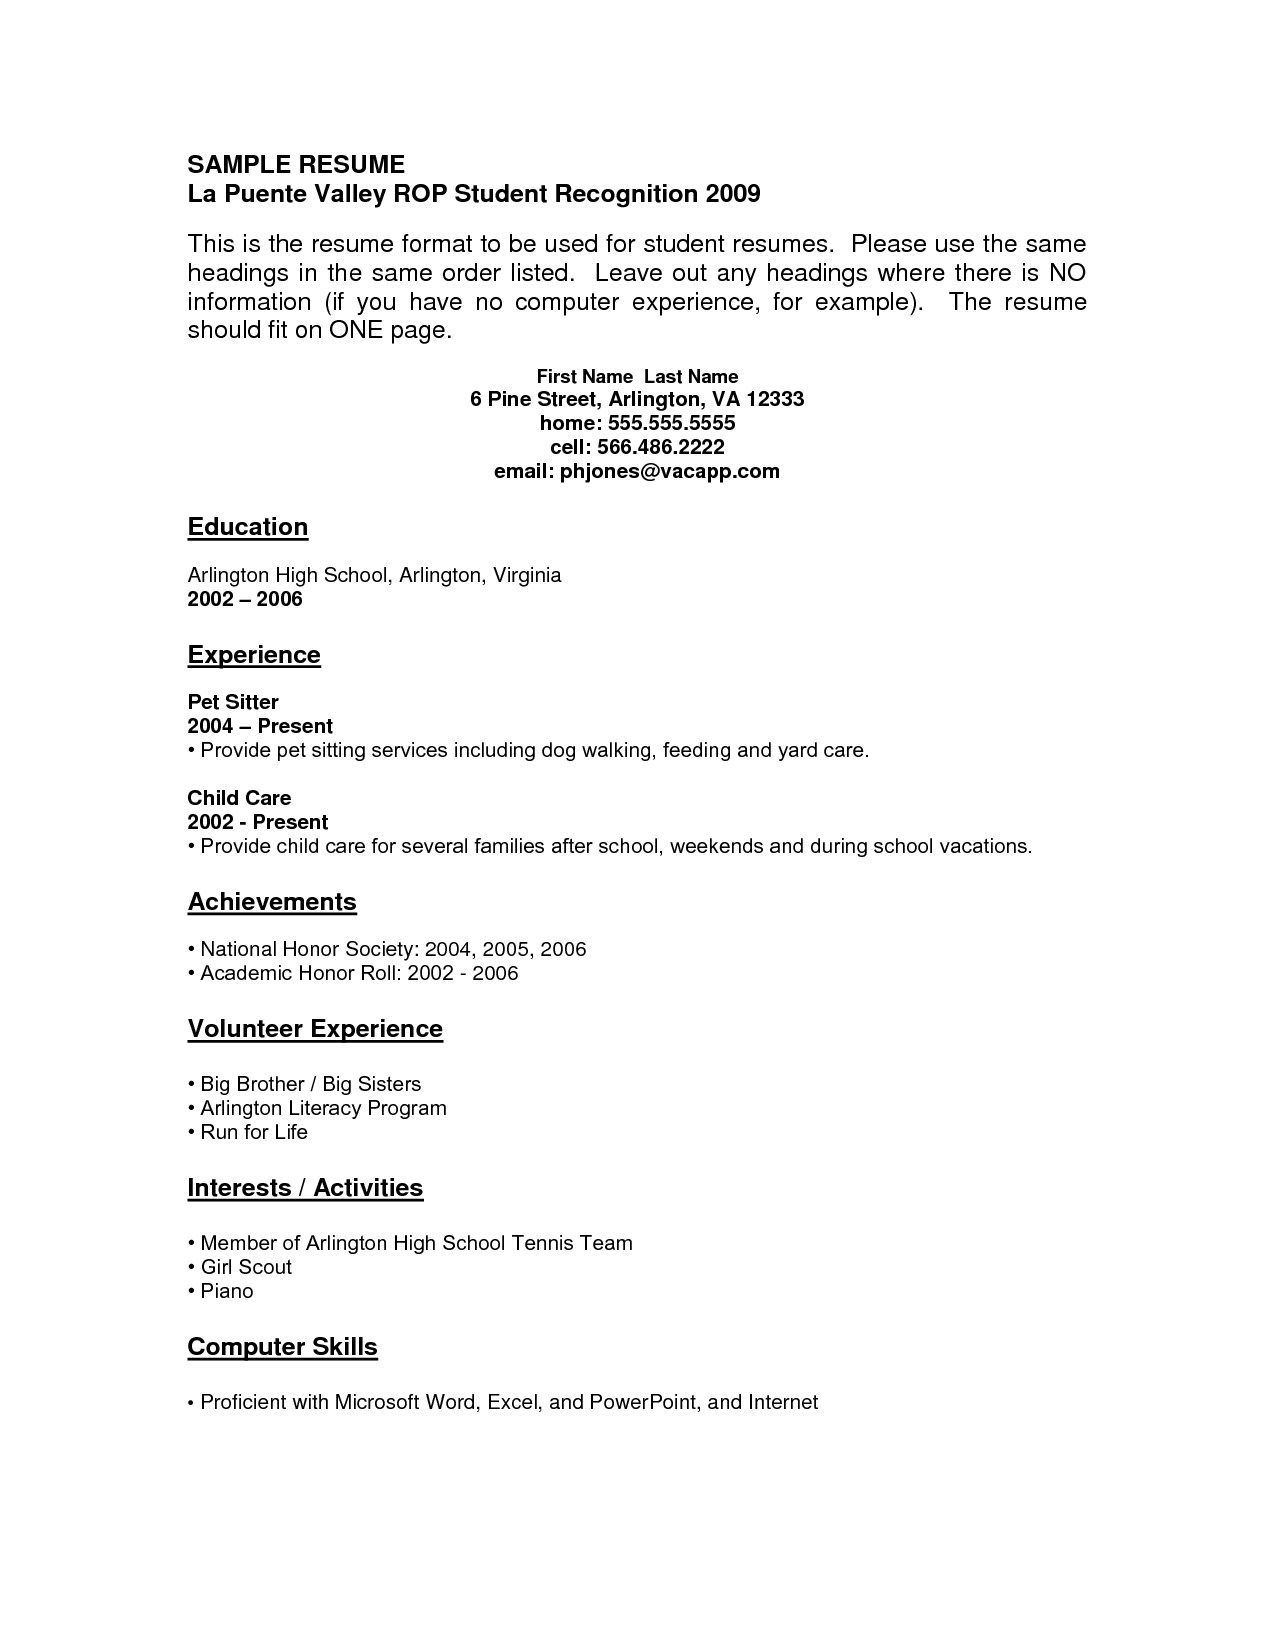 Resume Examples By Industry And Job Title Resume No Experience